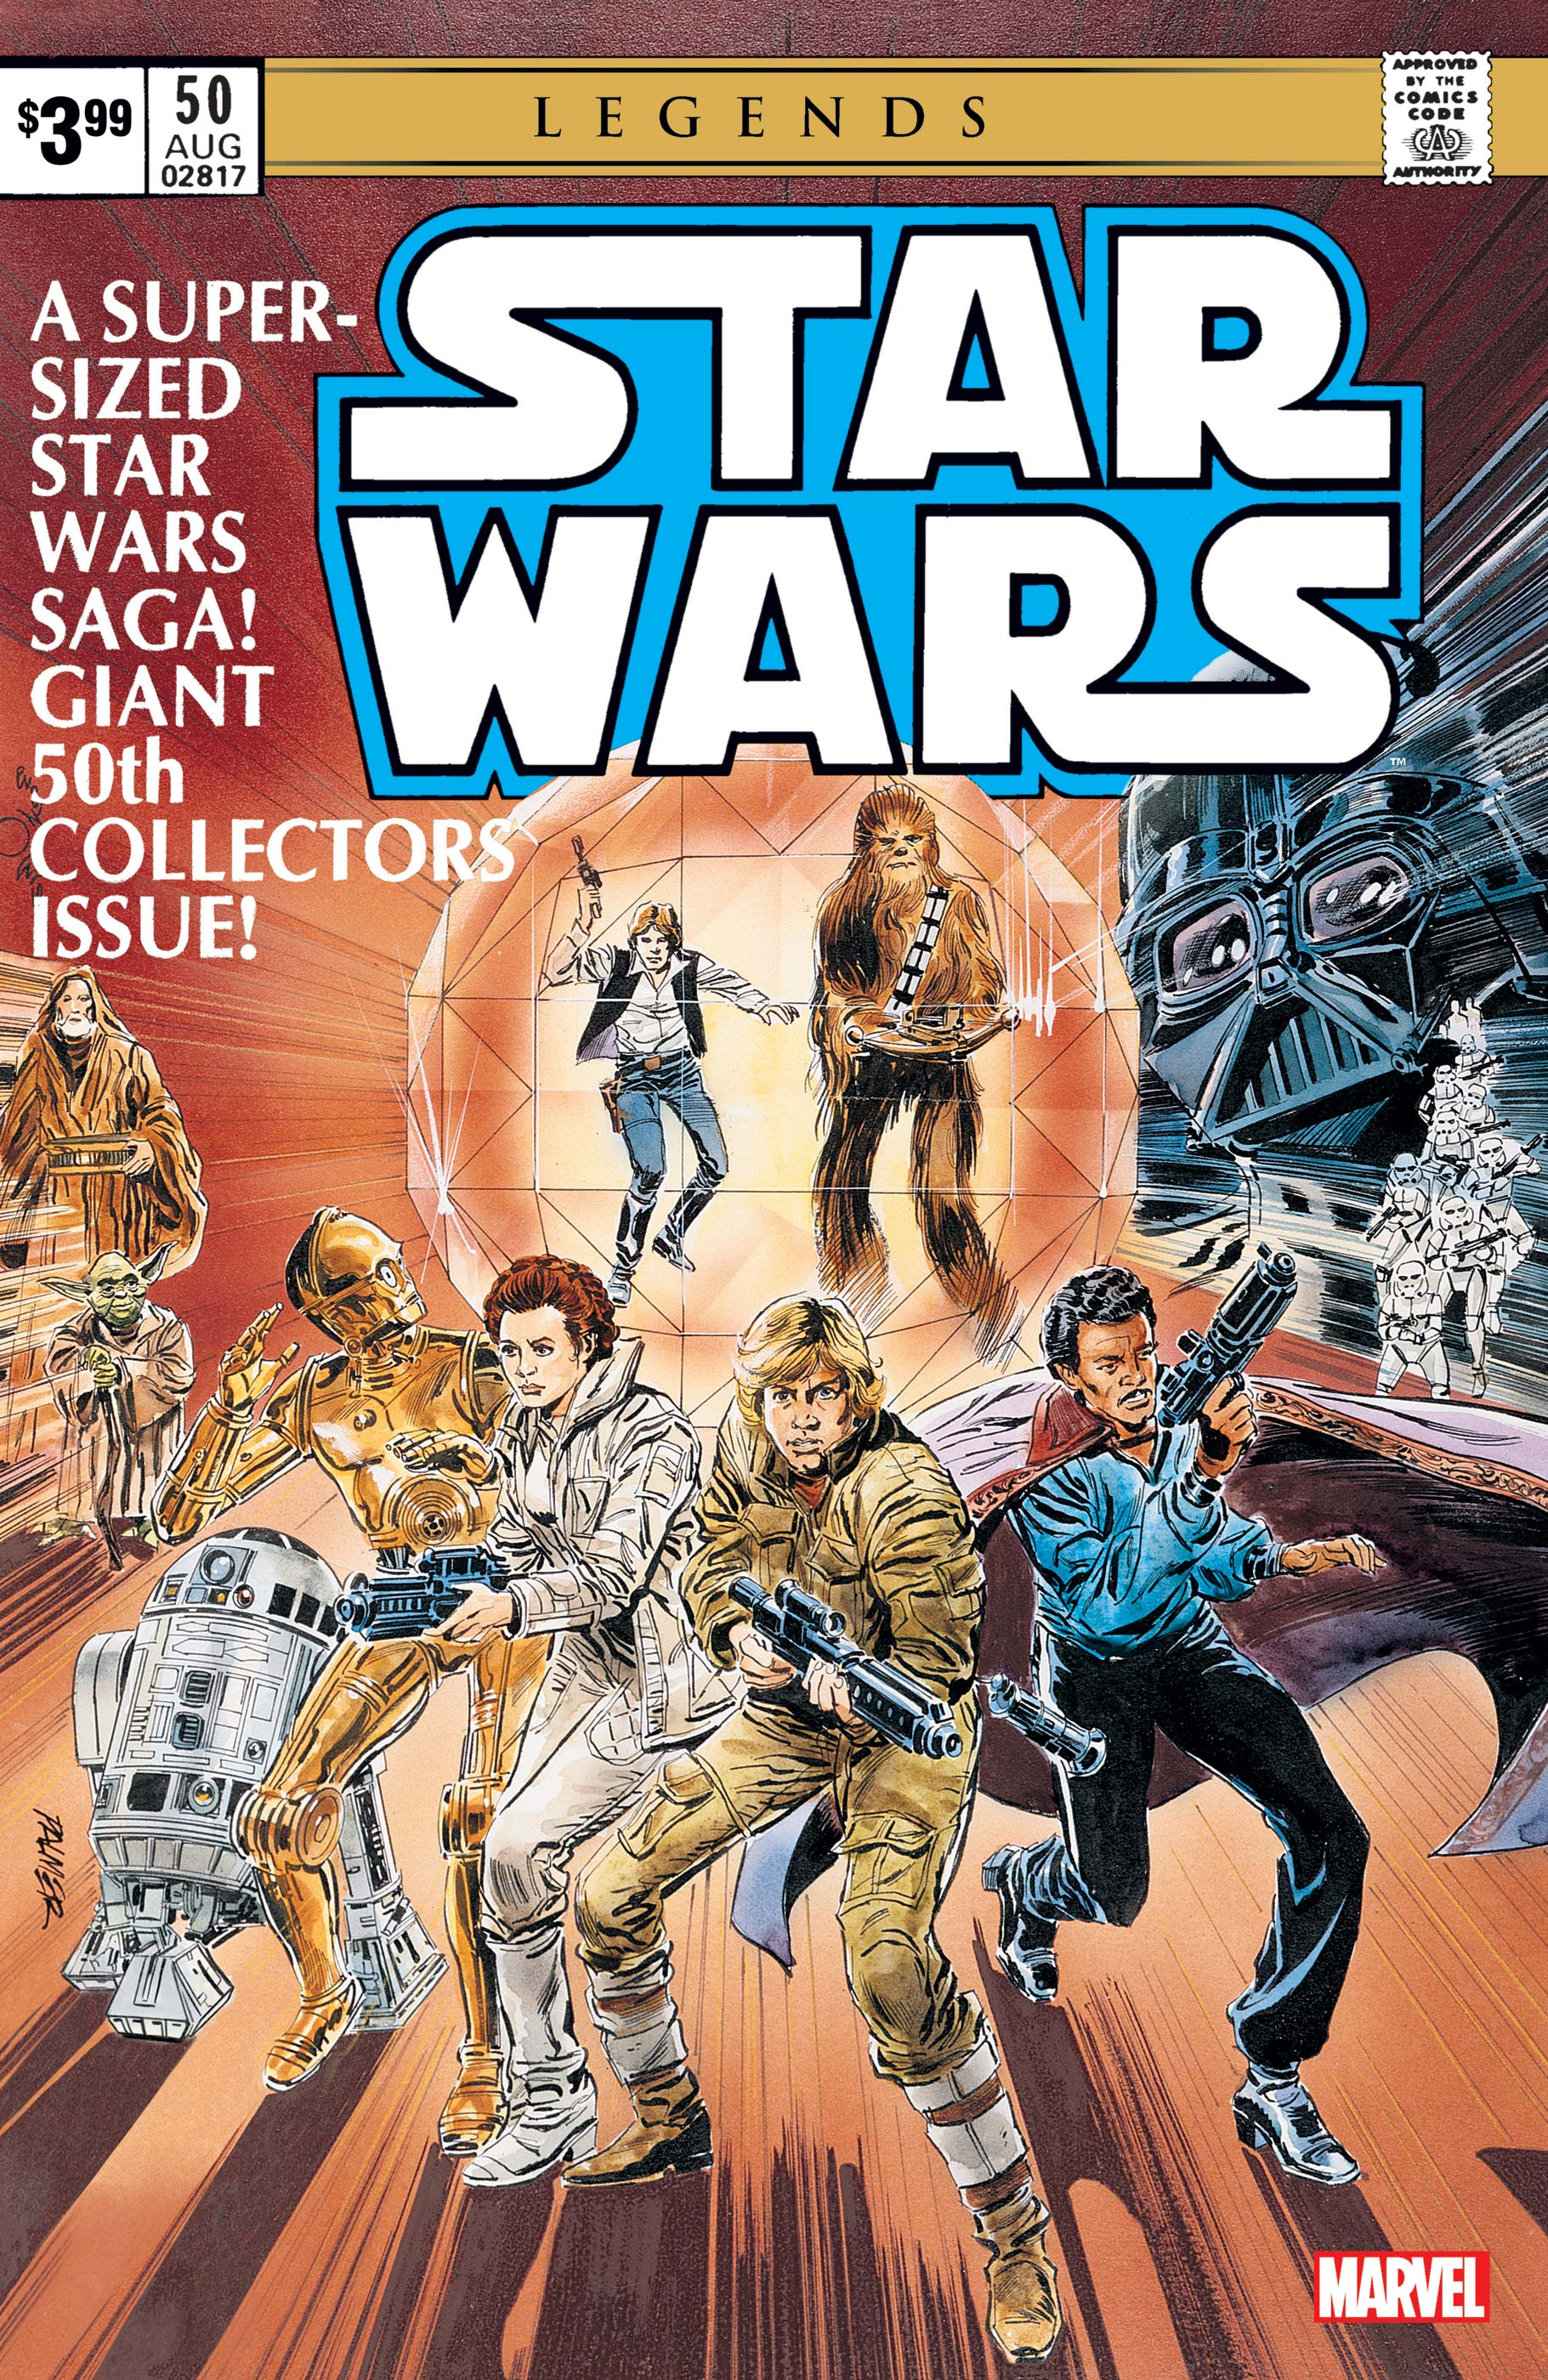 Star Wars: The Original Marvel Years 50 Facsimile Edition (2019) #1